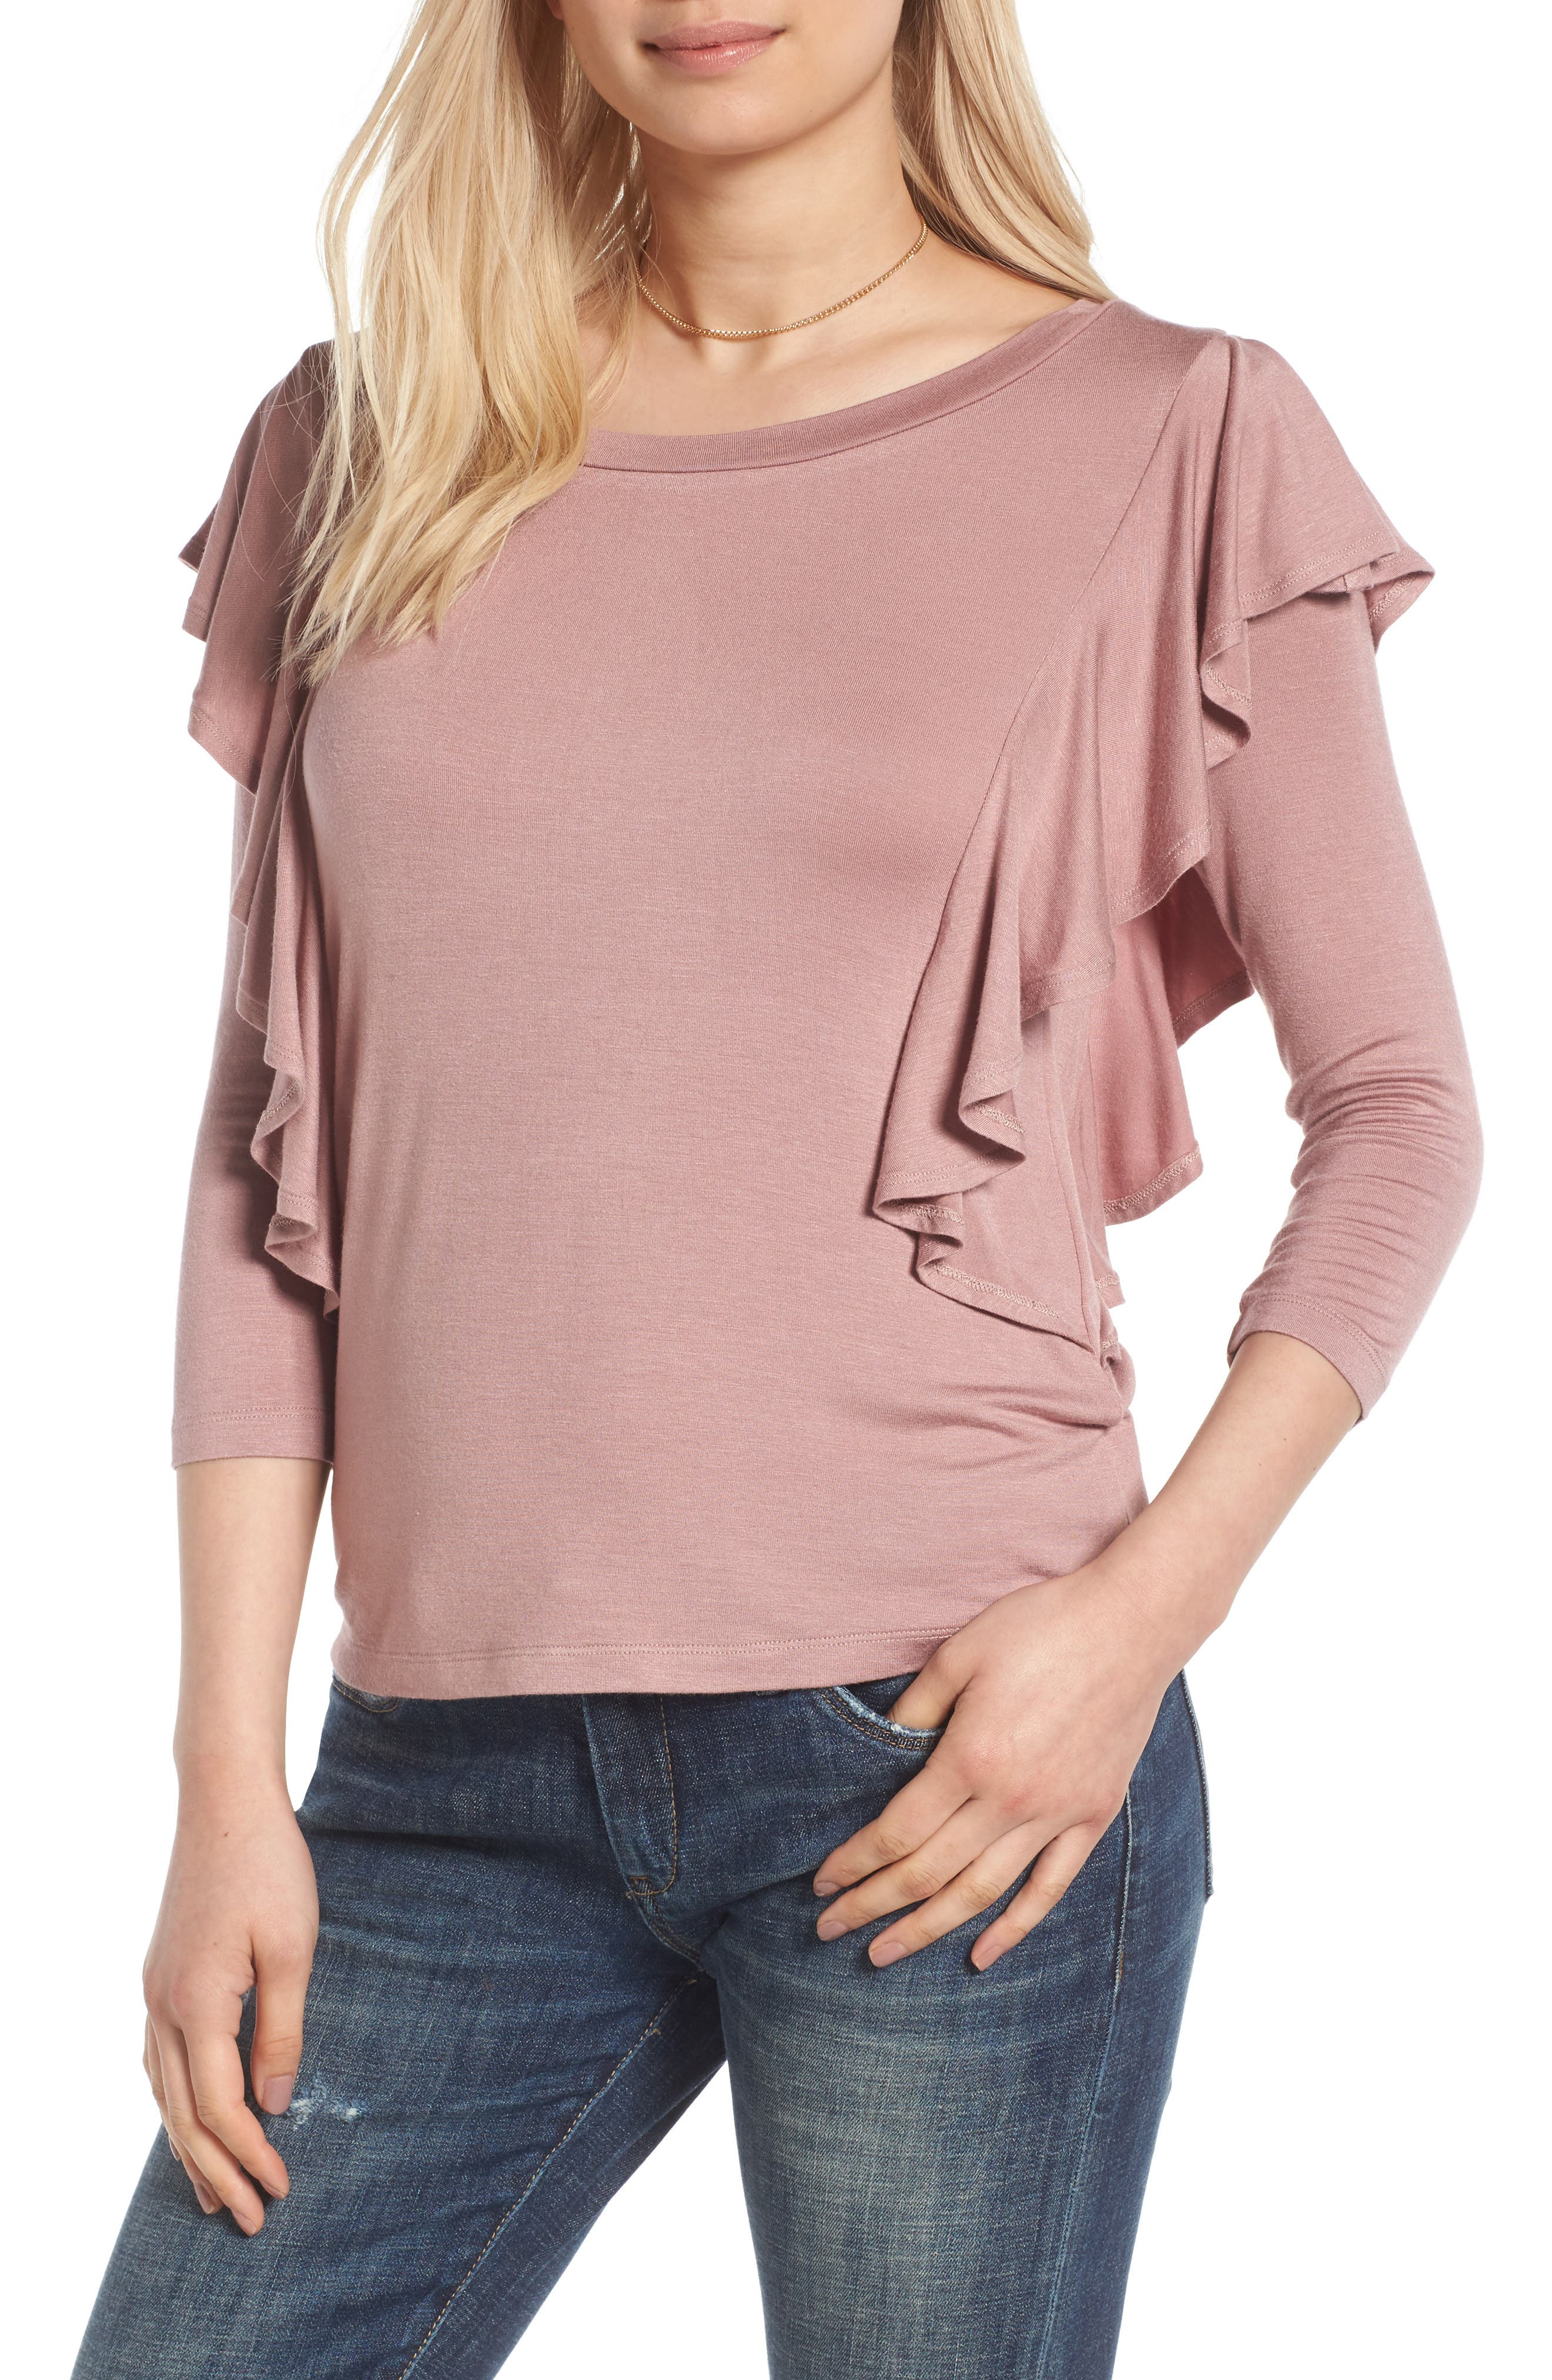 Alternate Image 1 Selected - Madison & Berkeley Ruffle Knit Top